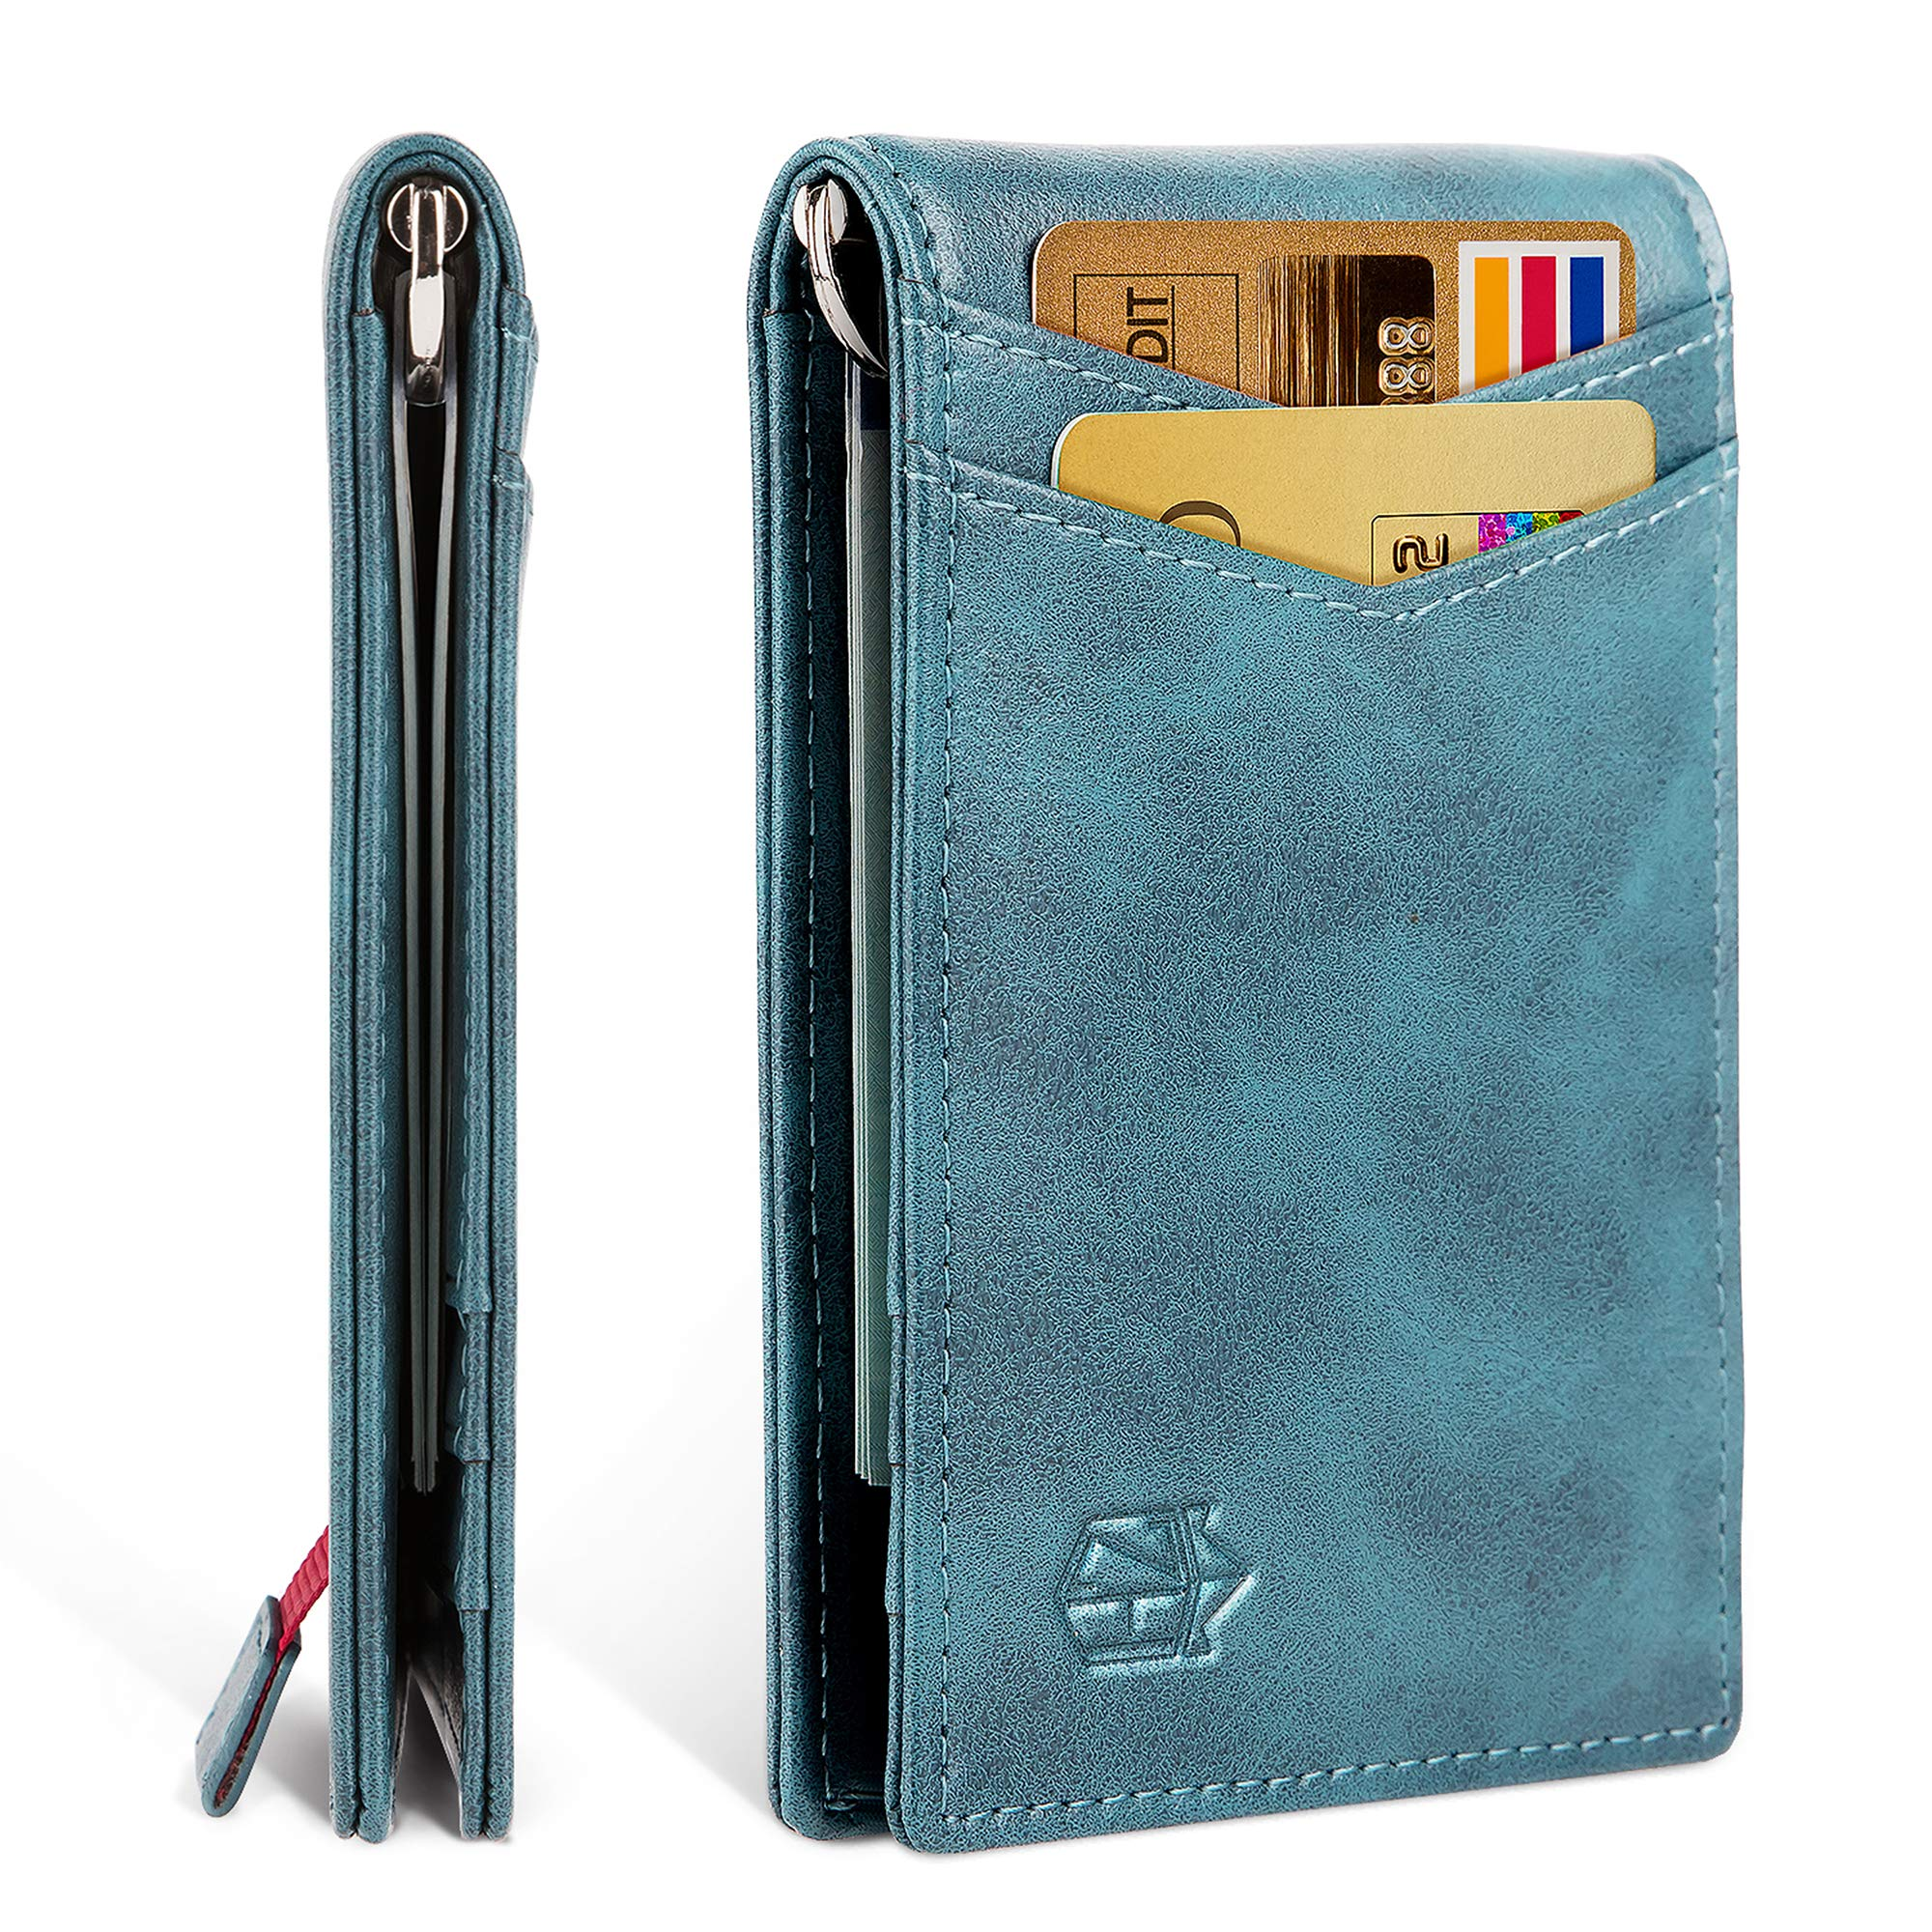 Zitahli Minimalist Slim Bifold Front Pocket Wallet with Money, Vintage Blue, Size Small by Zitahli